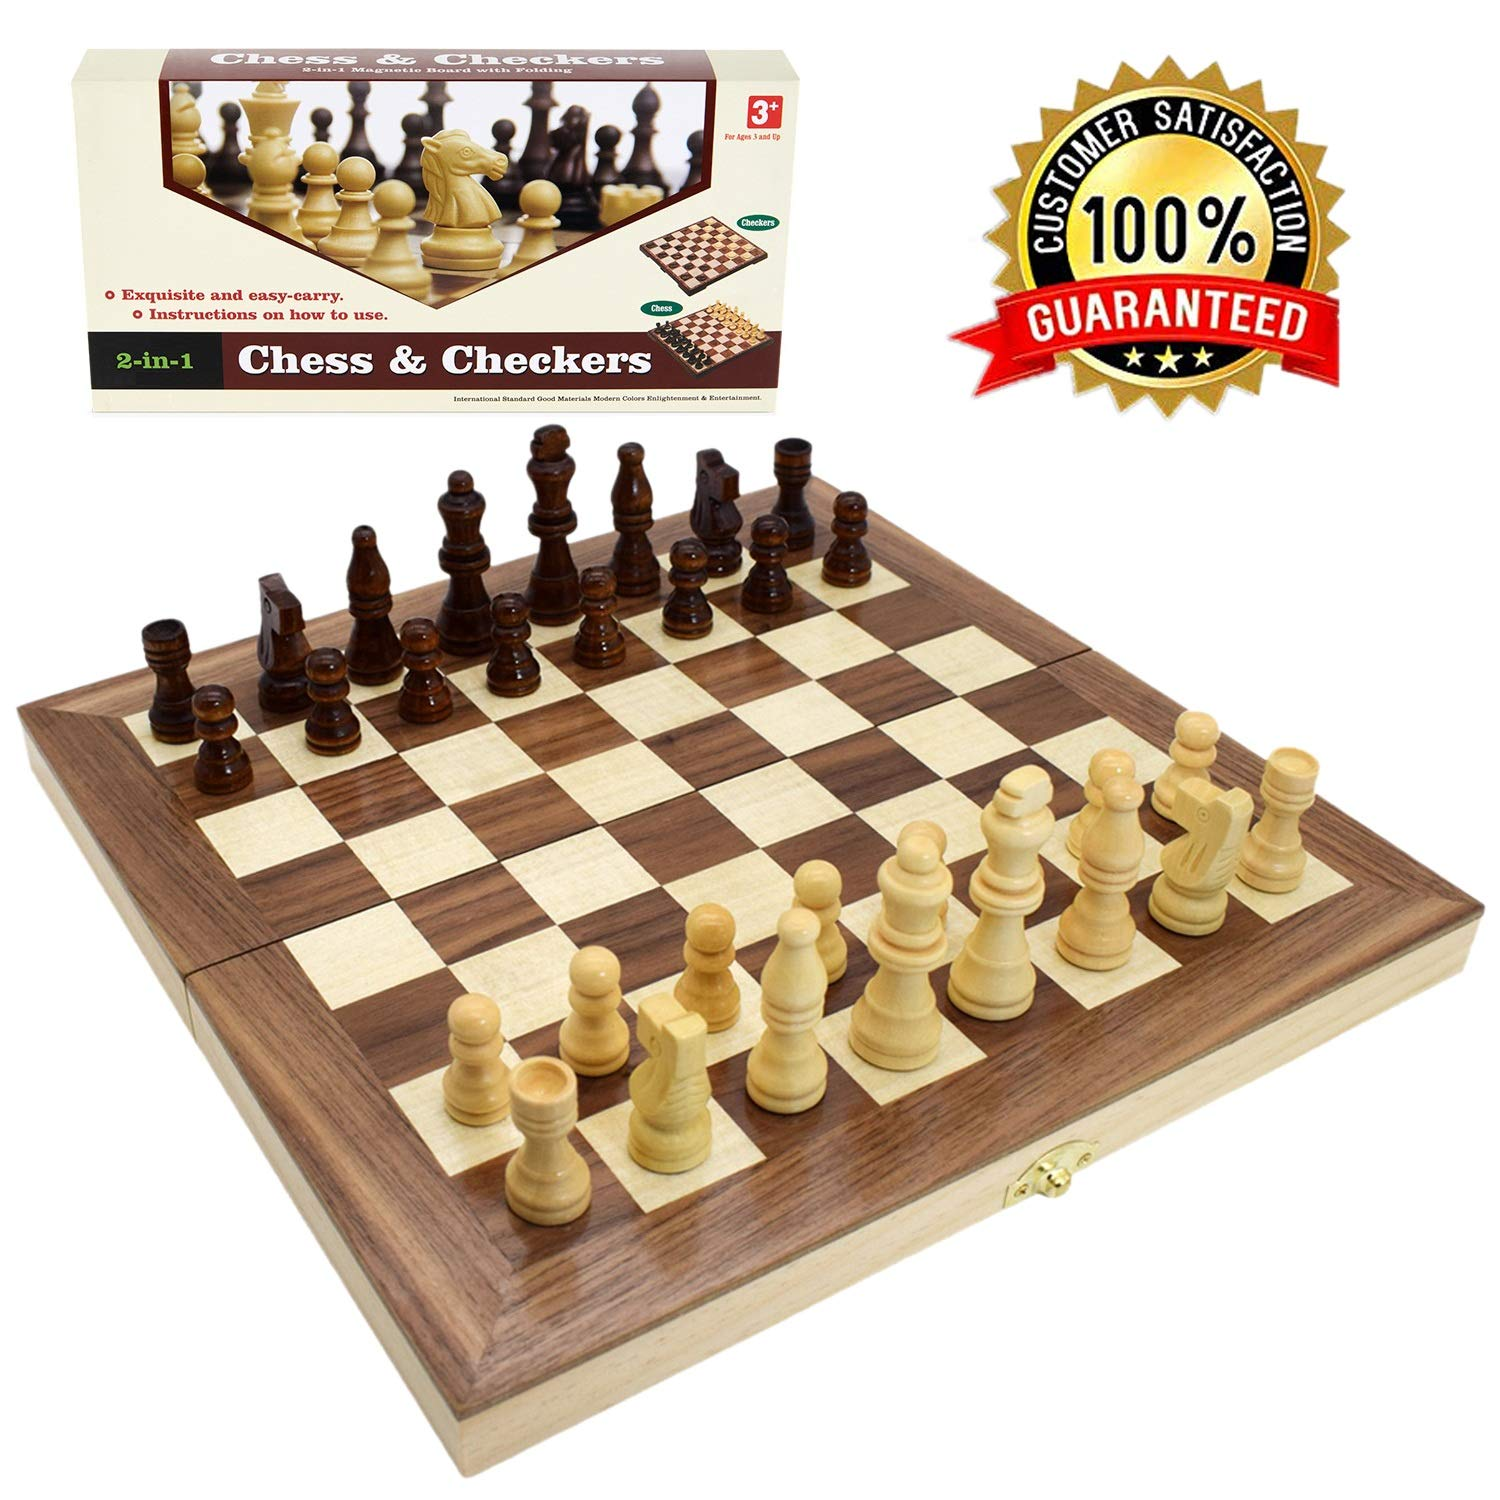 """Wooden Chess Set for Kids and Adults, Travel Chess and Checkers Set with Folding Chess Board  Games Set Interior for Storage (12"""" x 12"""")"""